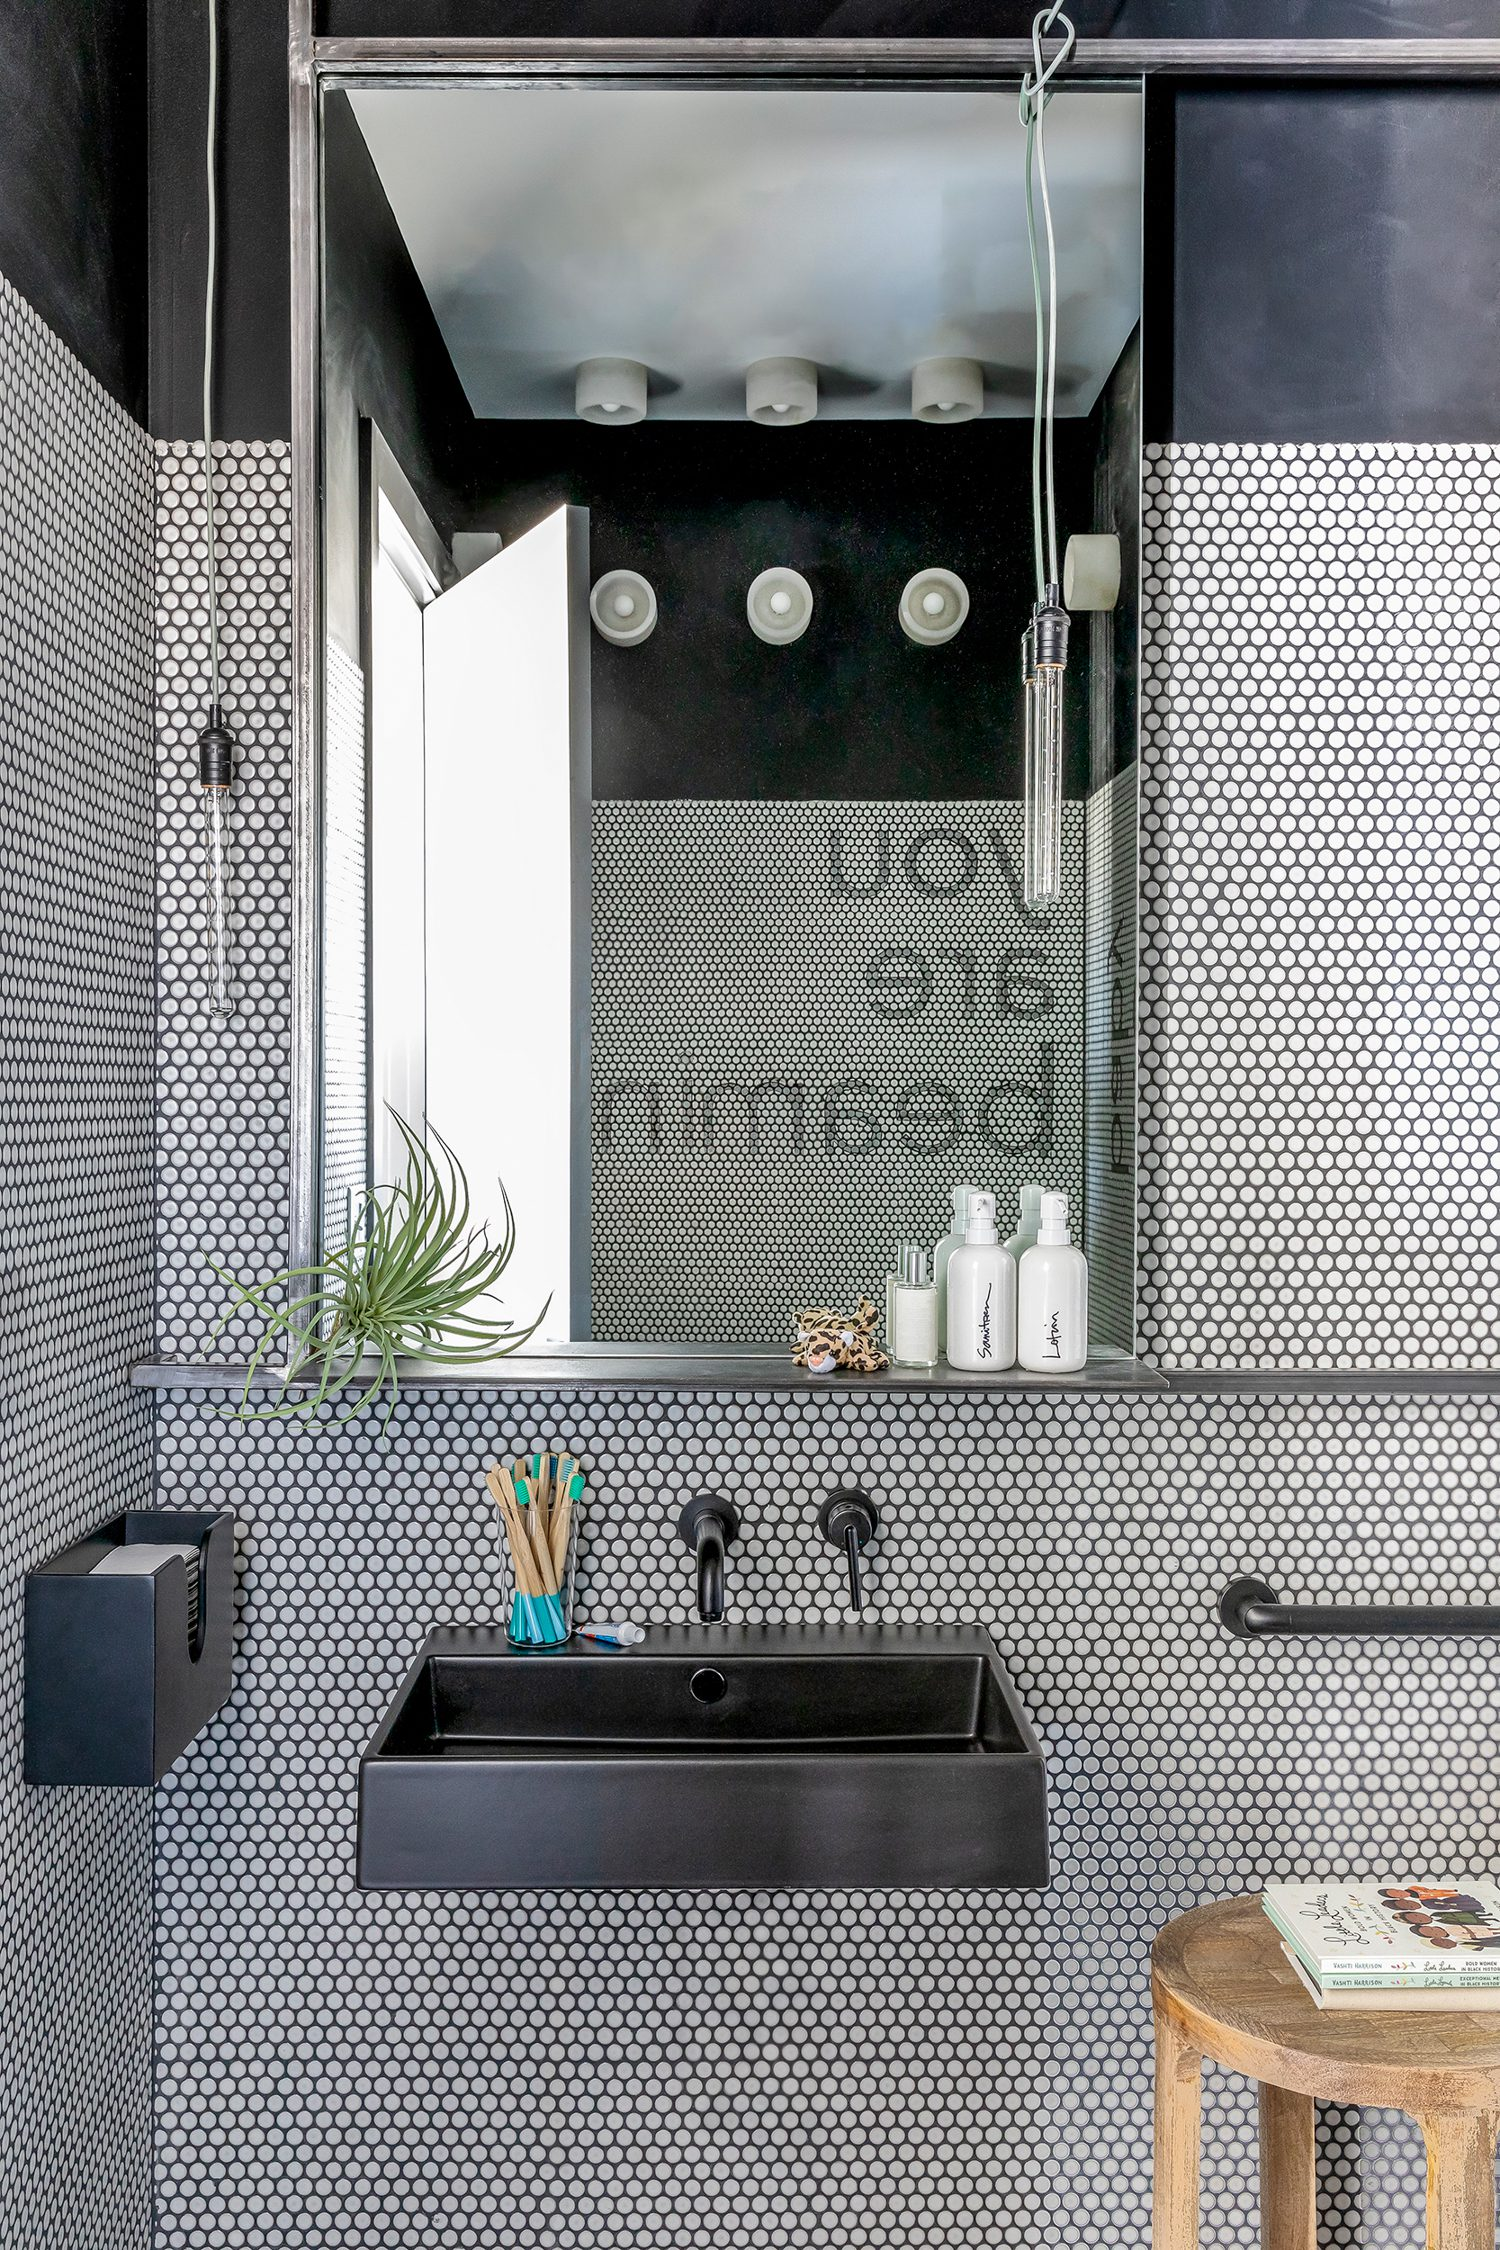 A bathroom, clad in Ann Sacks penny tile, offers wood toothbrushes.